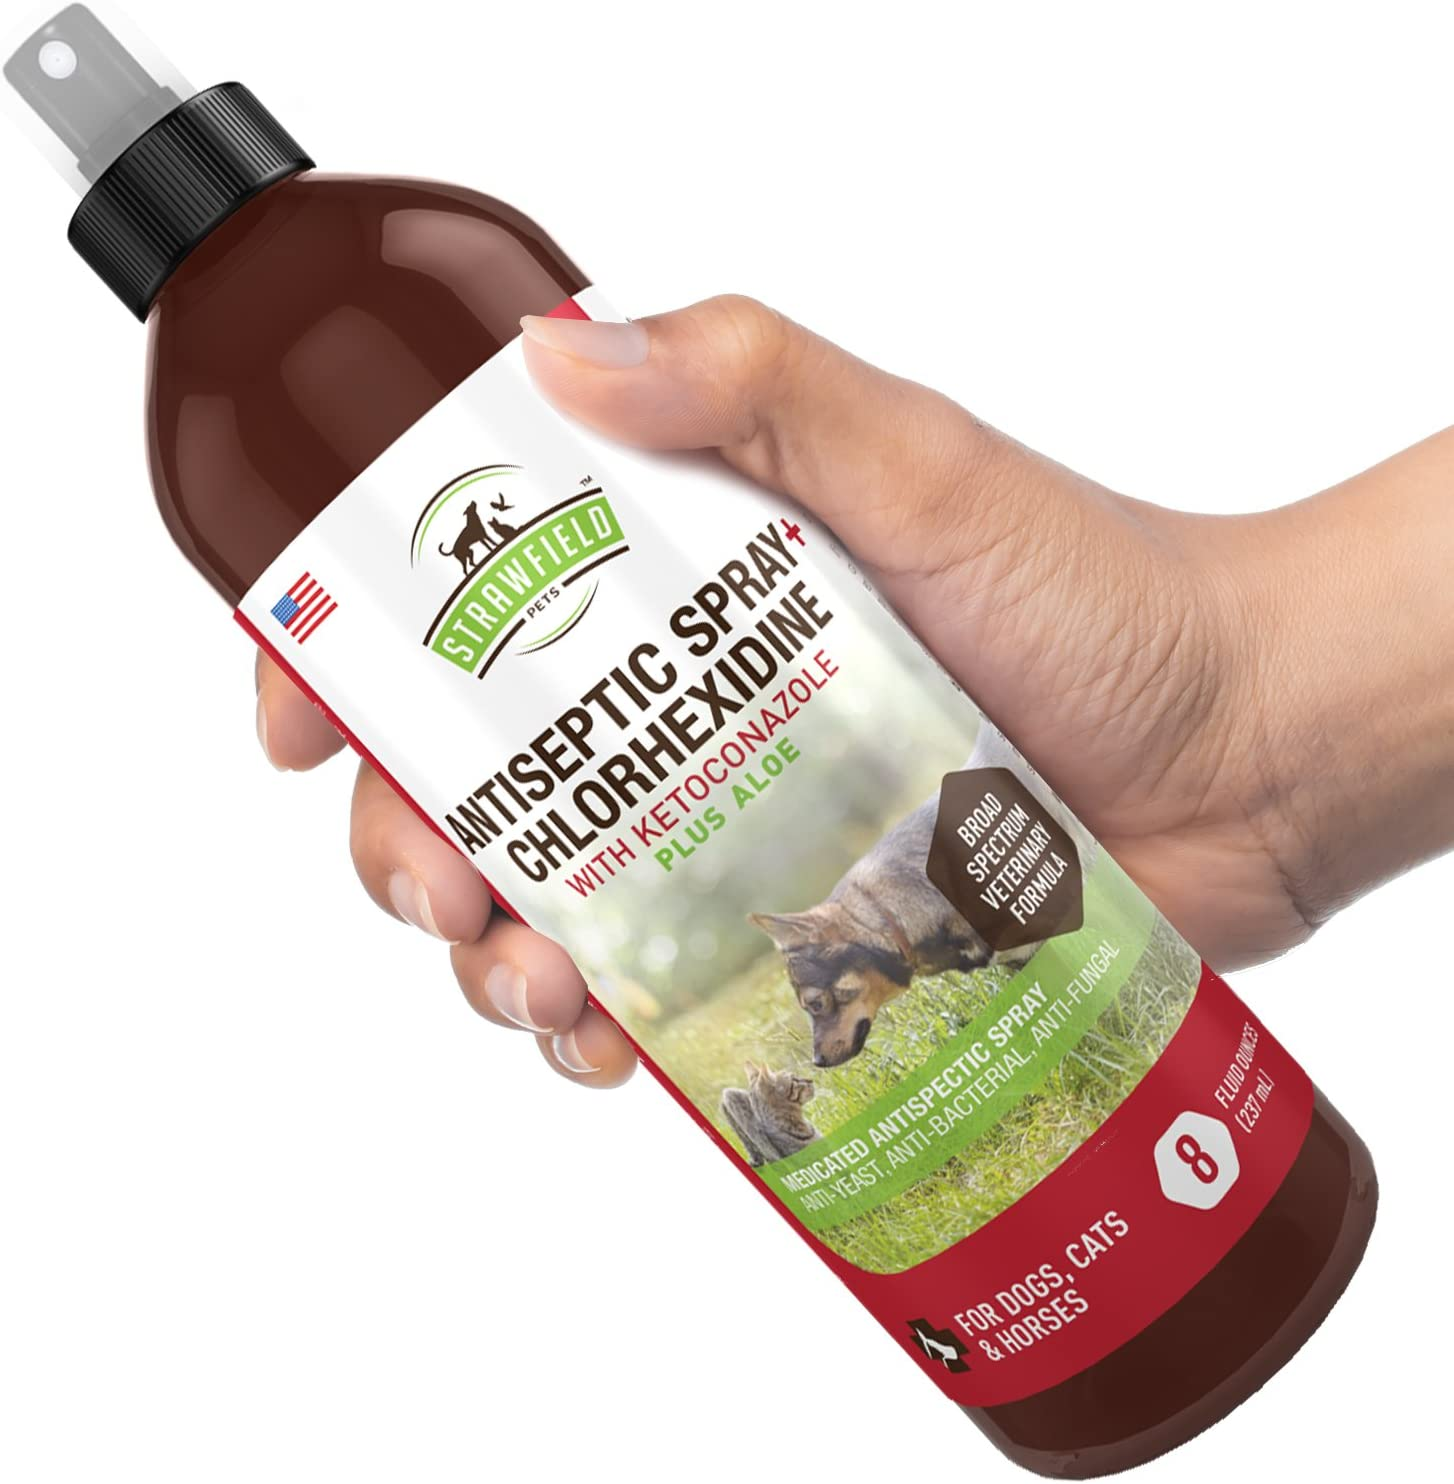 Chlorhexidine Spray for Dogs, Cats - Ketoconazole, Aloe - 8 oz - Cat, Dog Hot Spot Treatment, Mange, Ringworm, Yeast Infection, Itching Skin Relief, Allergy Itch, Acne, Antibacterial Antifungal, USA : Pet Supplies